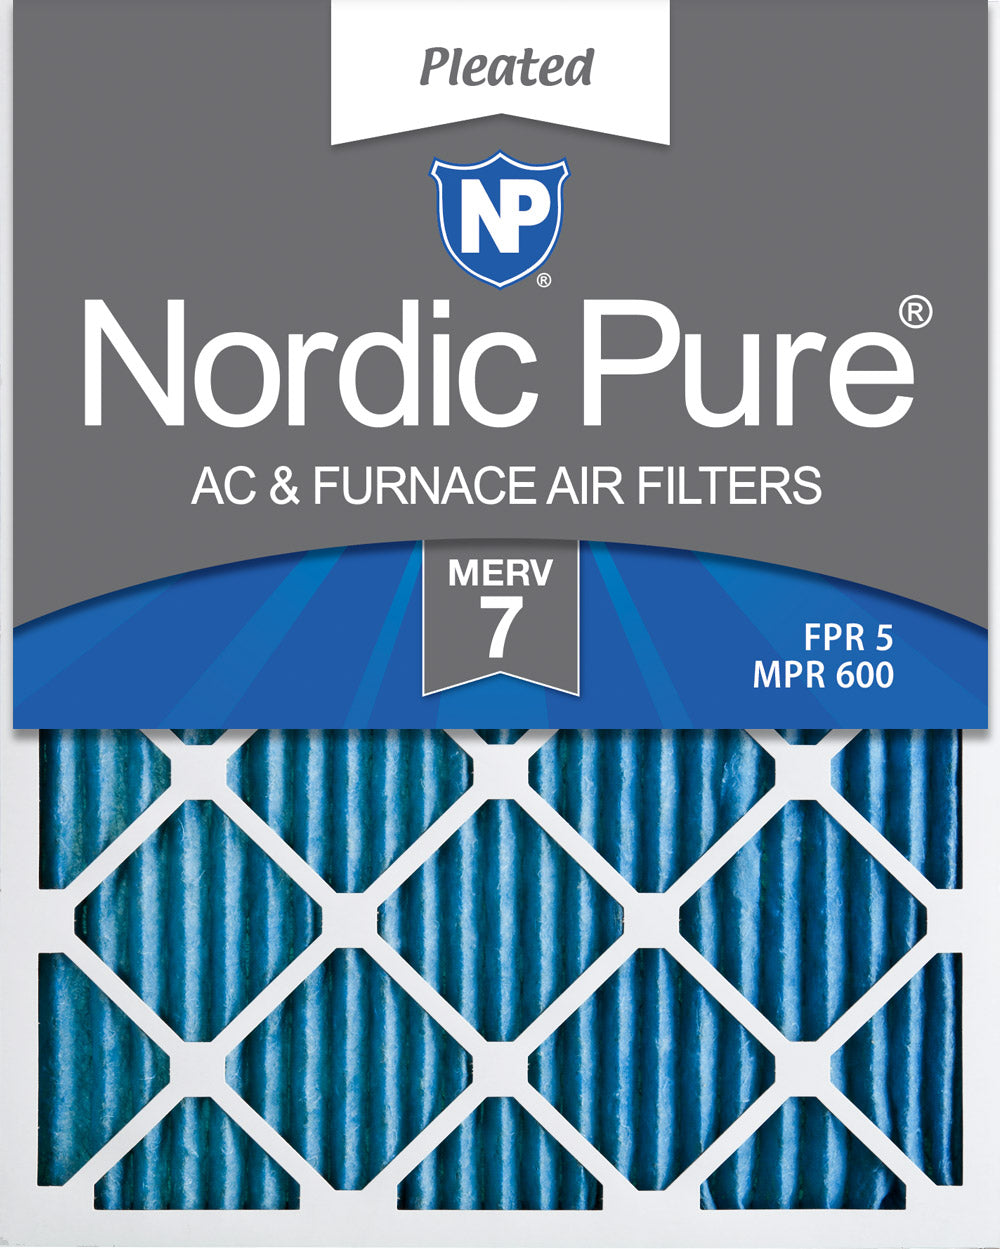 16x24x2 Pleated MERV 7 Air Filters 3 Pack